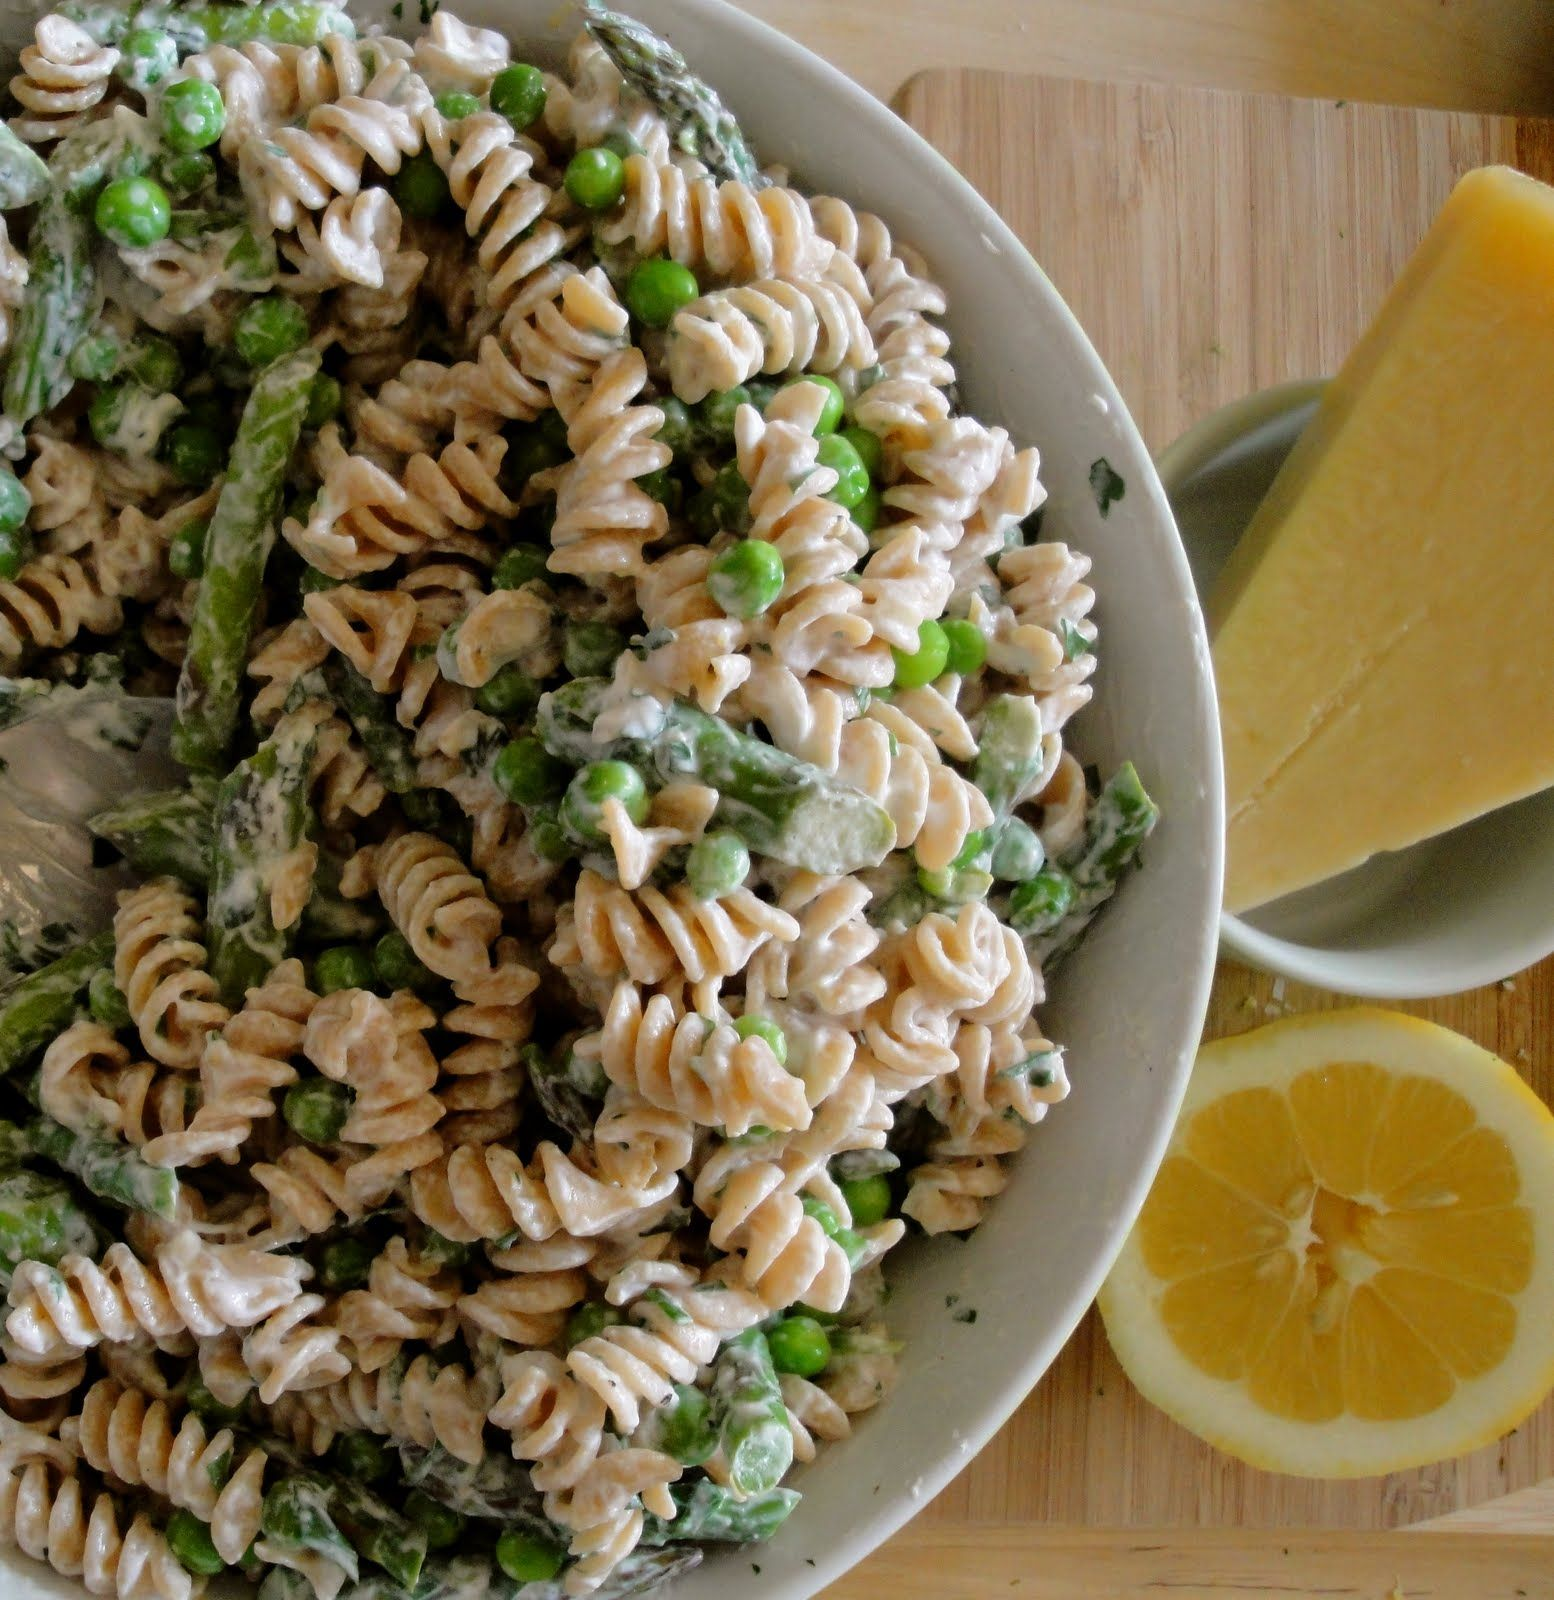 Whole Wheat Pasta with Asparagus, Fresh Herbs, and Citrusy Lemon - aromatic and zesty